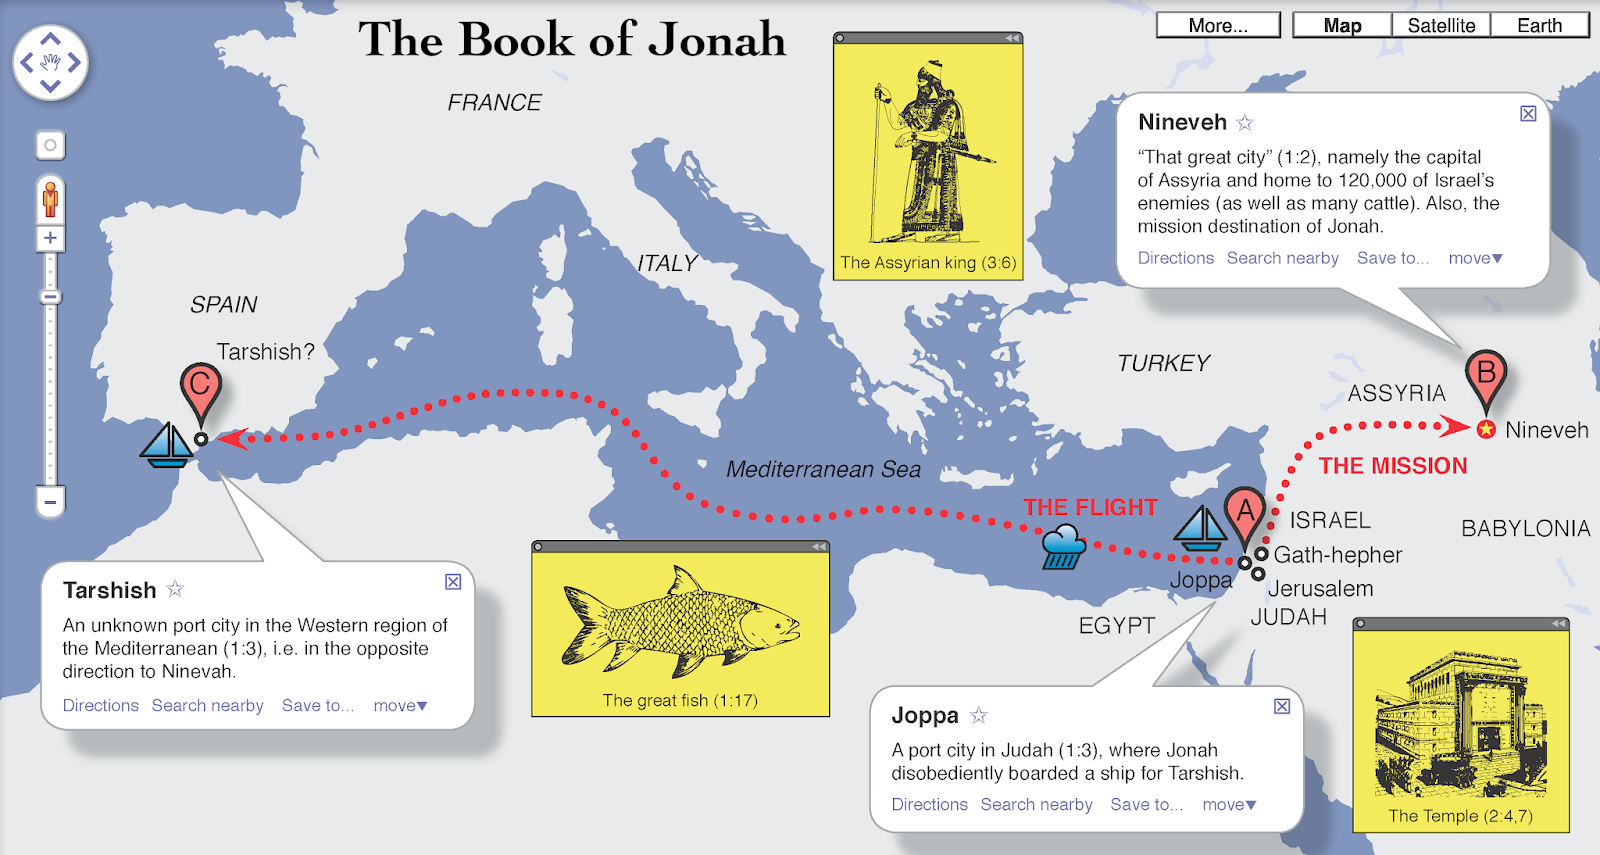 Reflect on Jonah's motivations for running from God and apply any insights to your own life.